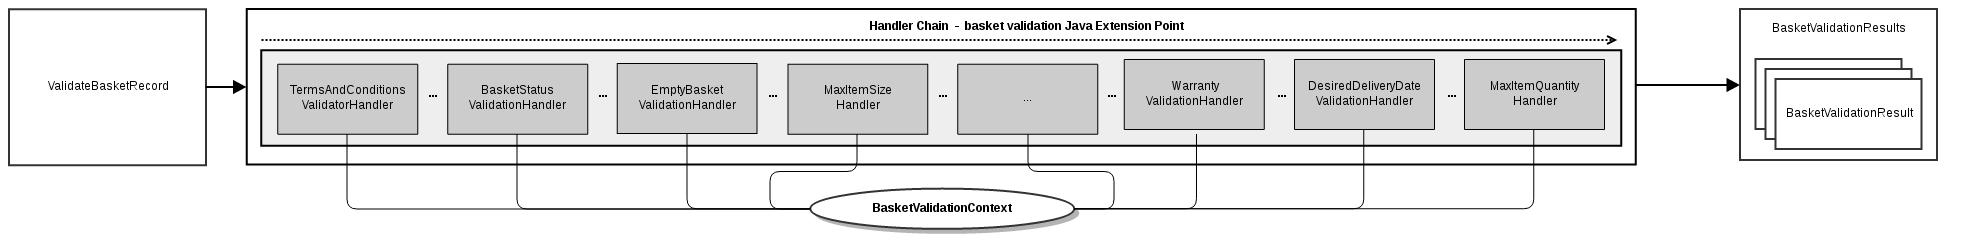 concept_basket_handling_basket_validation_handler_chain